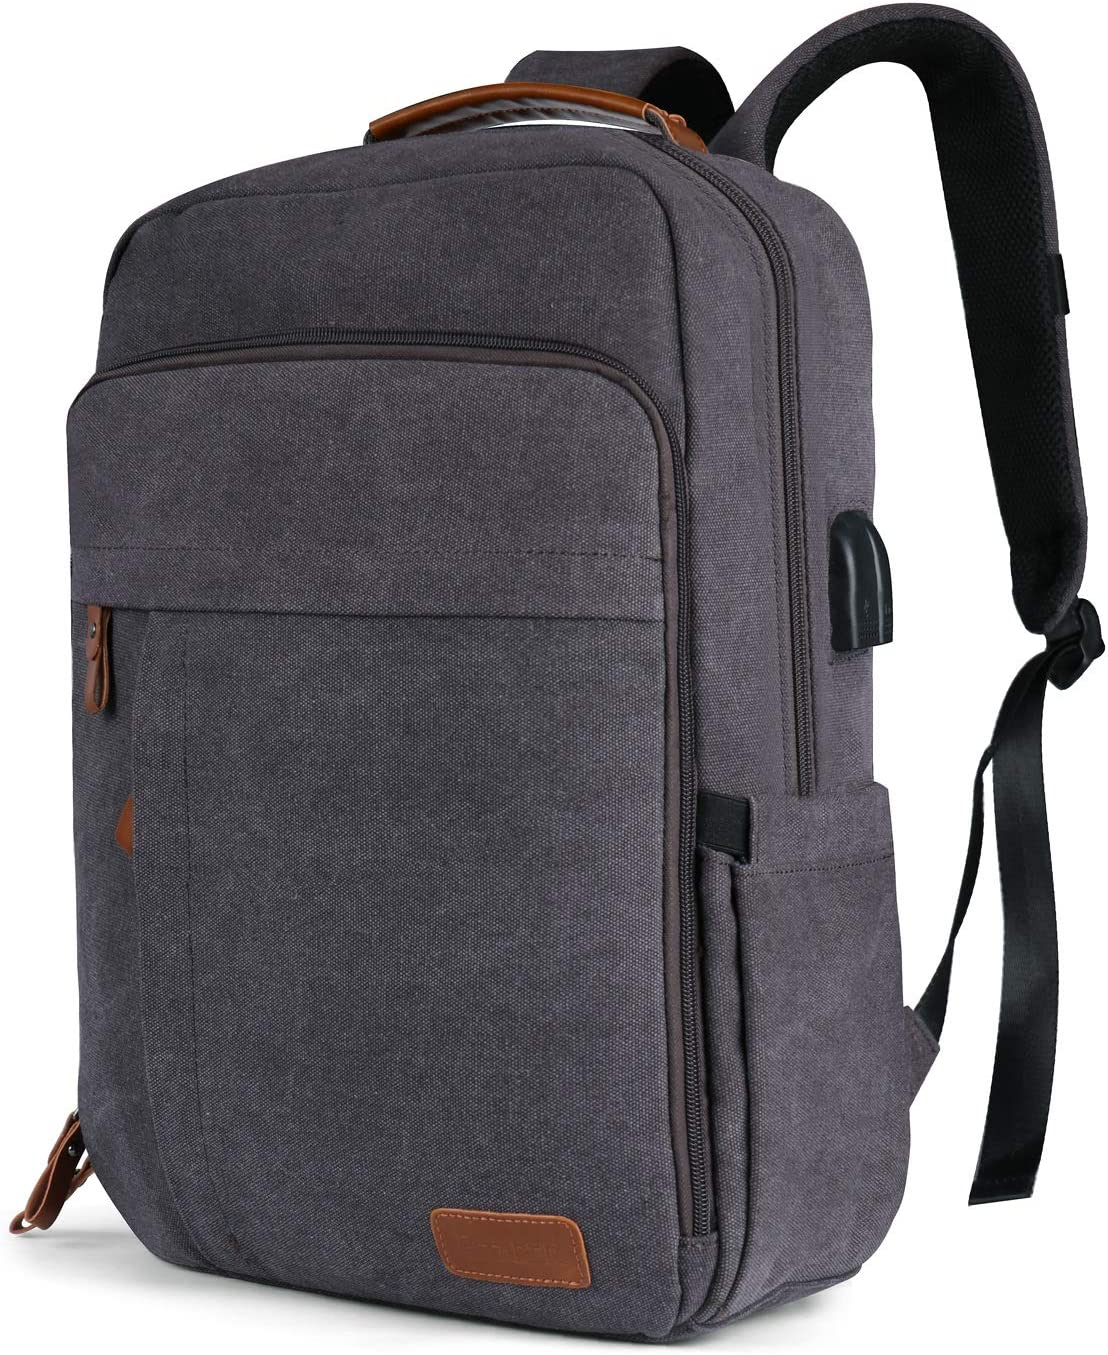 Business Laptop Backpack 15-15.6 Inch W USB Charging Port Water-Resistant Canvas Backpack for Work College School Travel